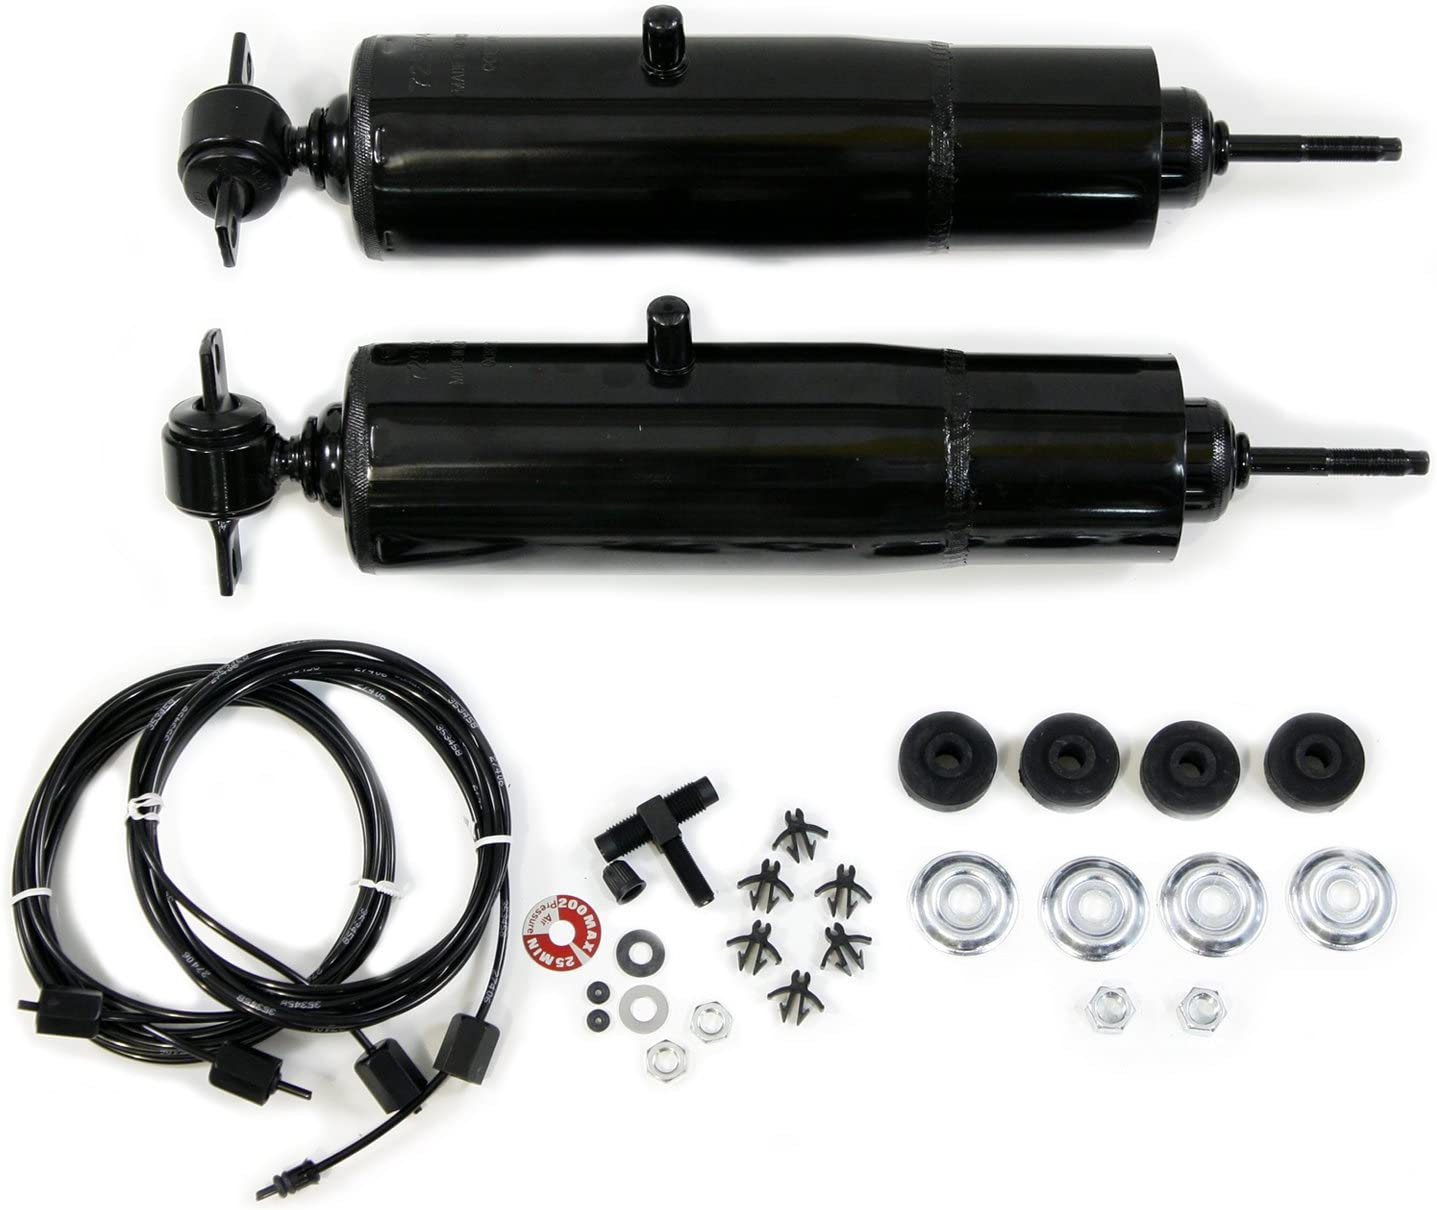 ACDelco Specialty 504-512 Rear Luxury Lift Shock Absorber Air Free shipping